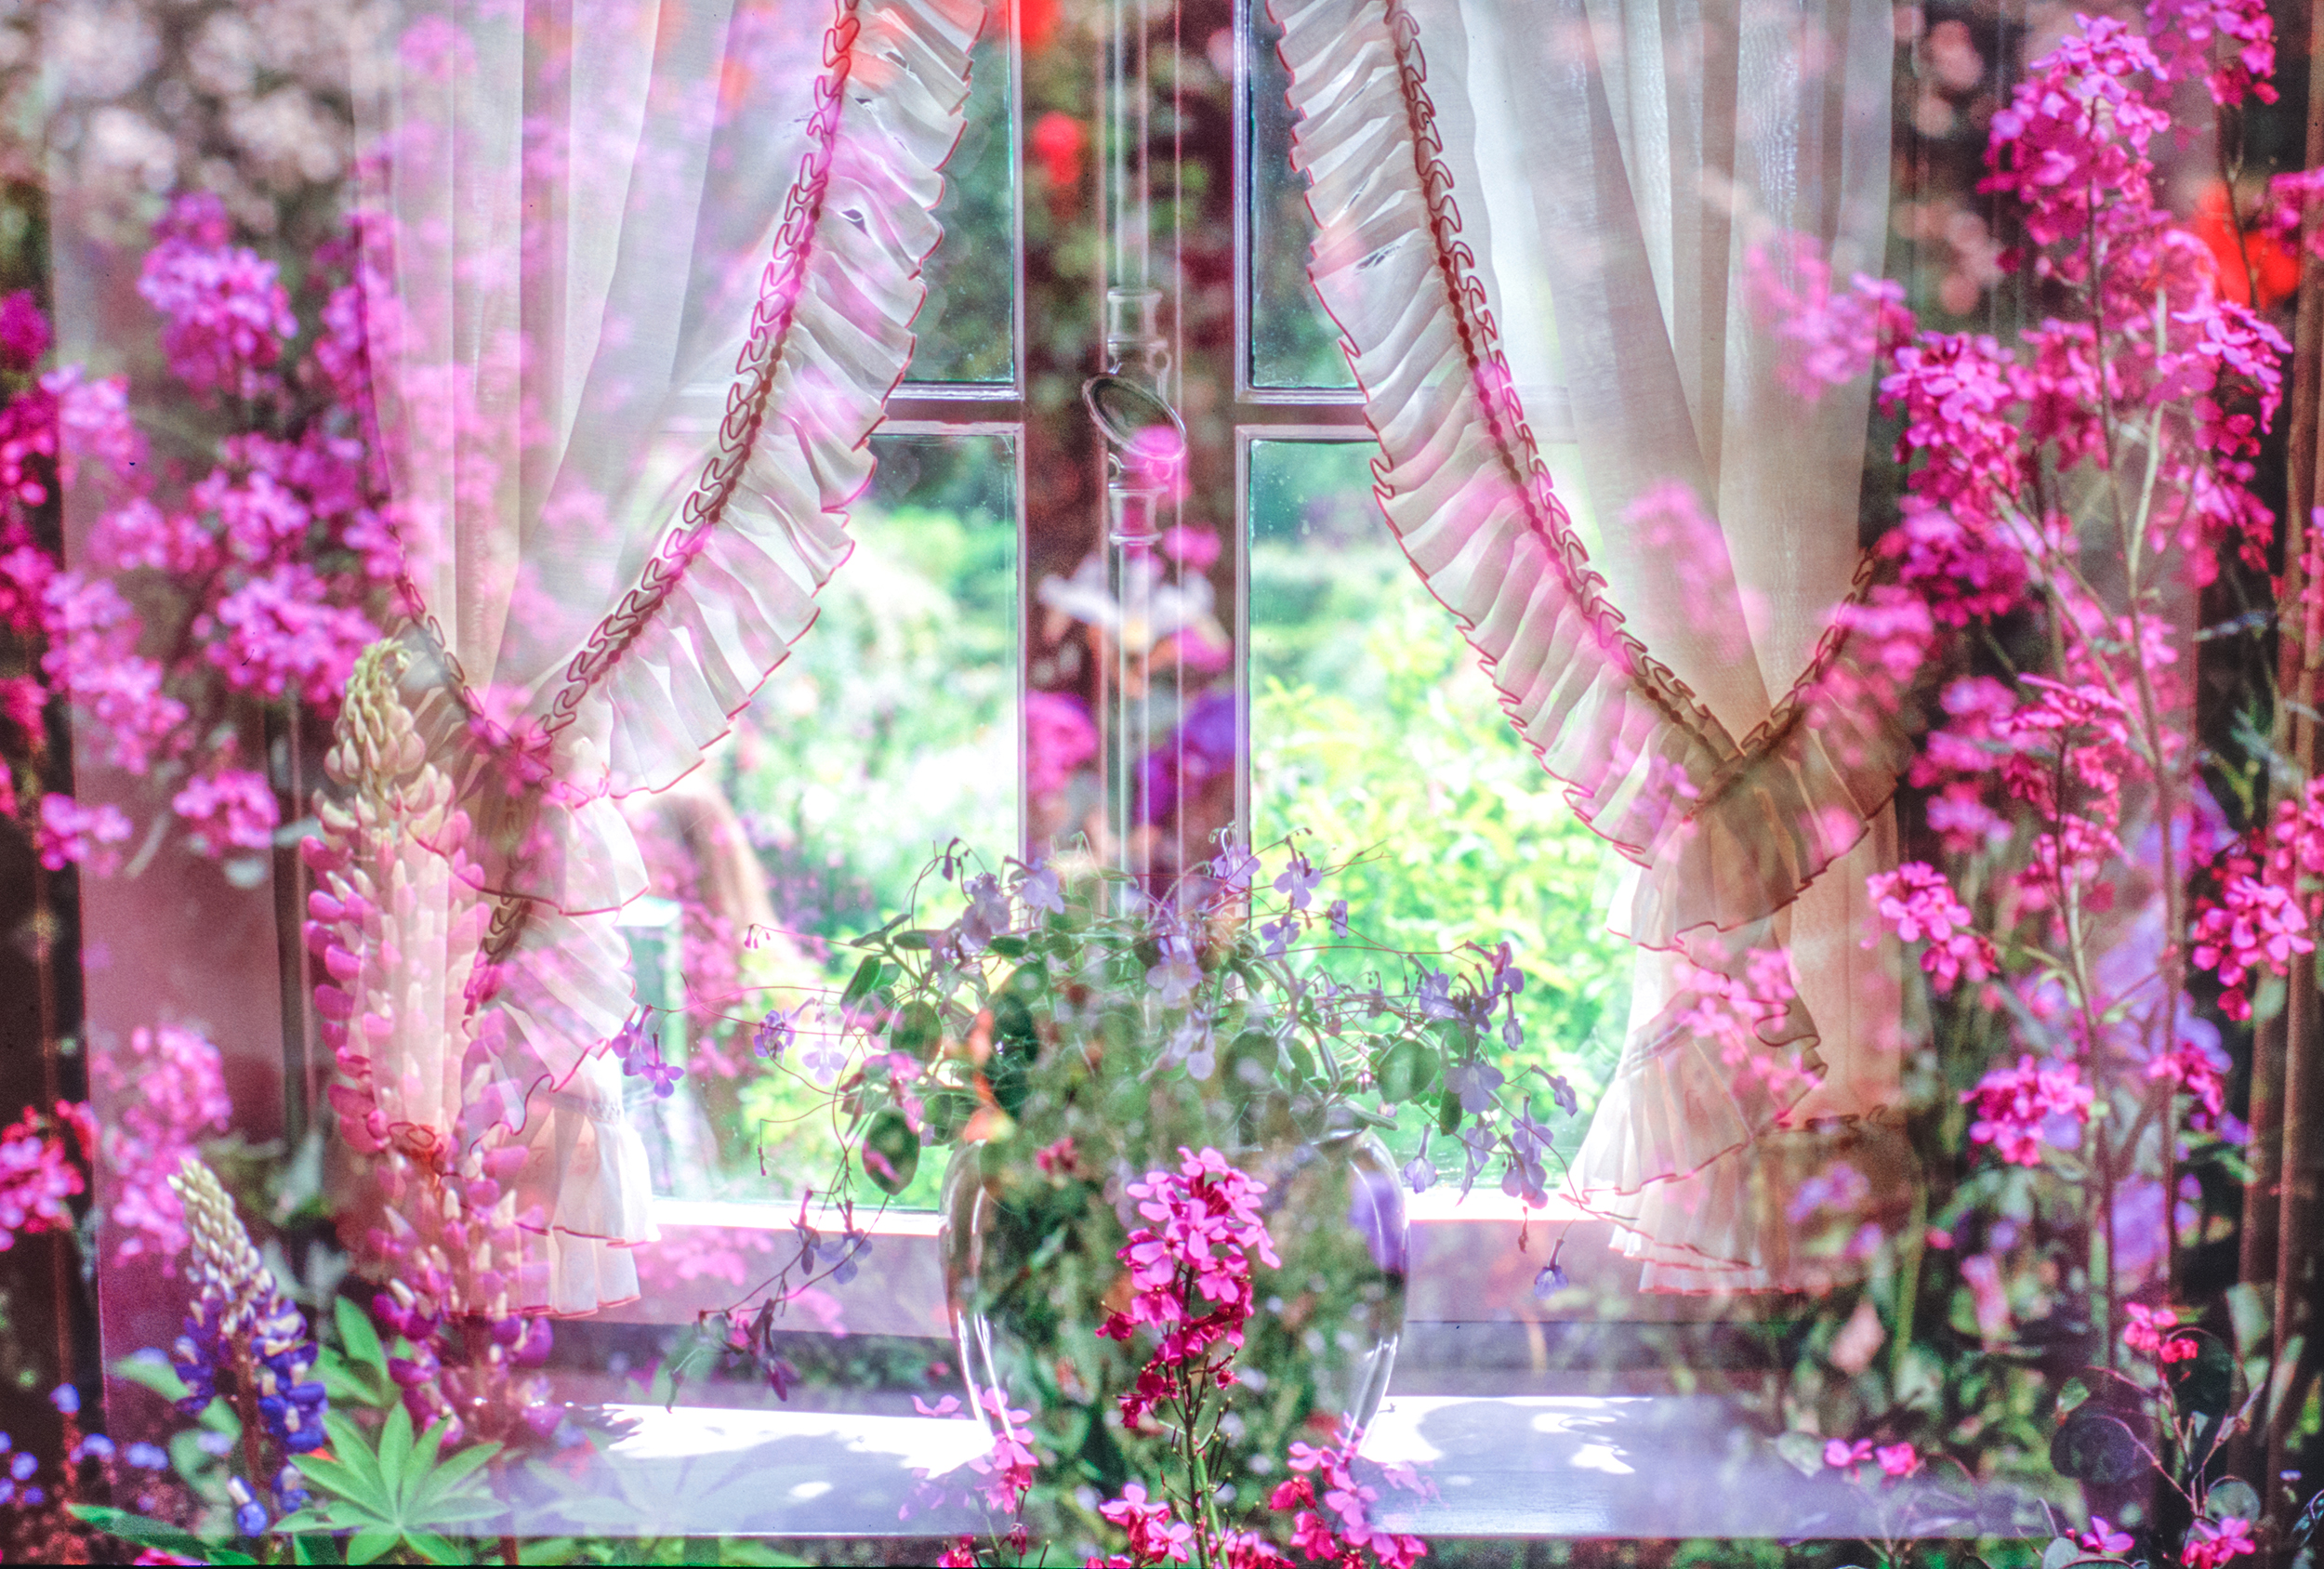 An Ode to Monet - his house in Giverny double exposed with is garden